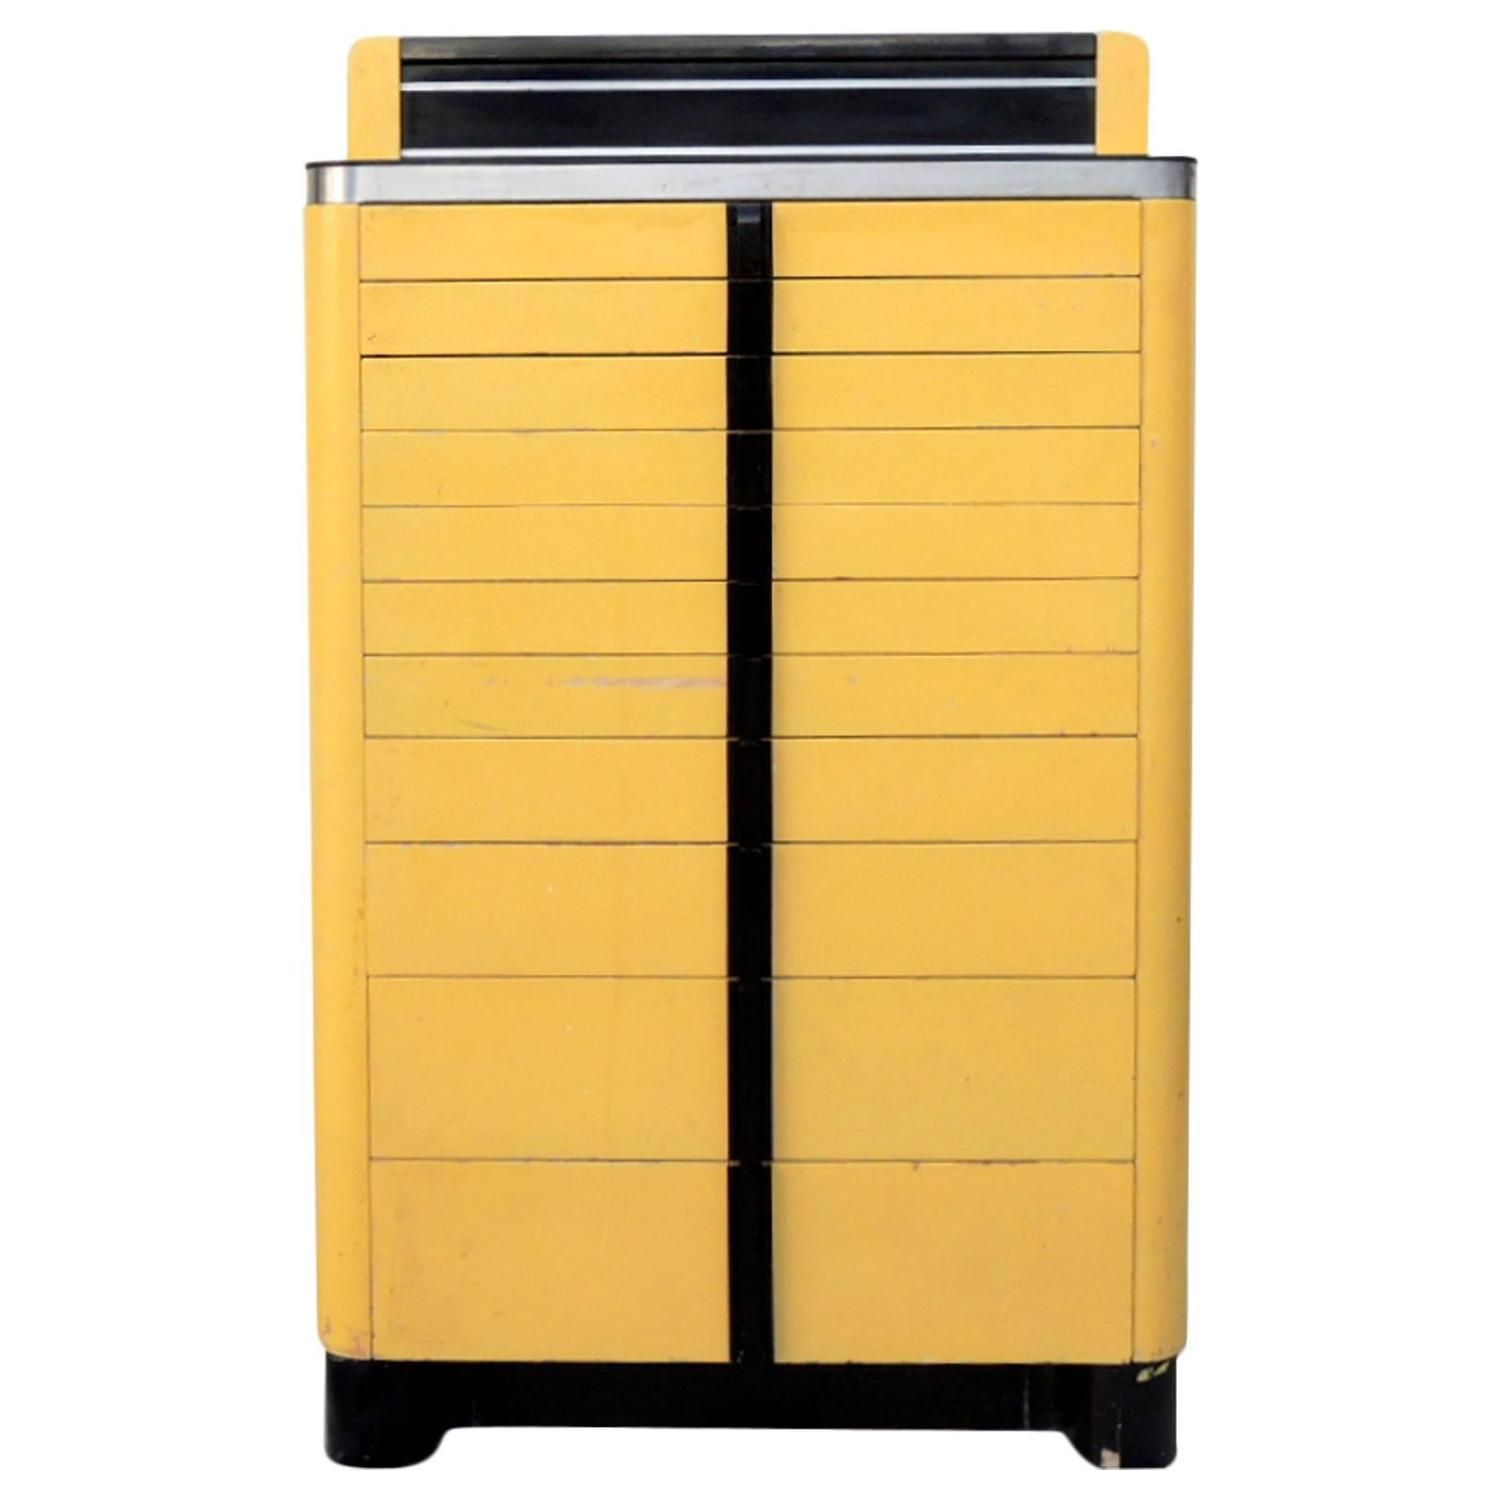 High Quality Art Deco Industrial Dental Cabinet